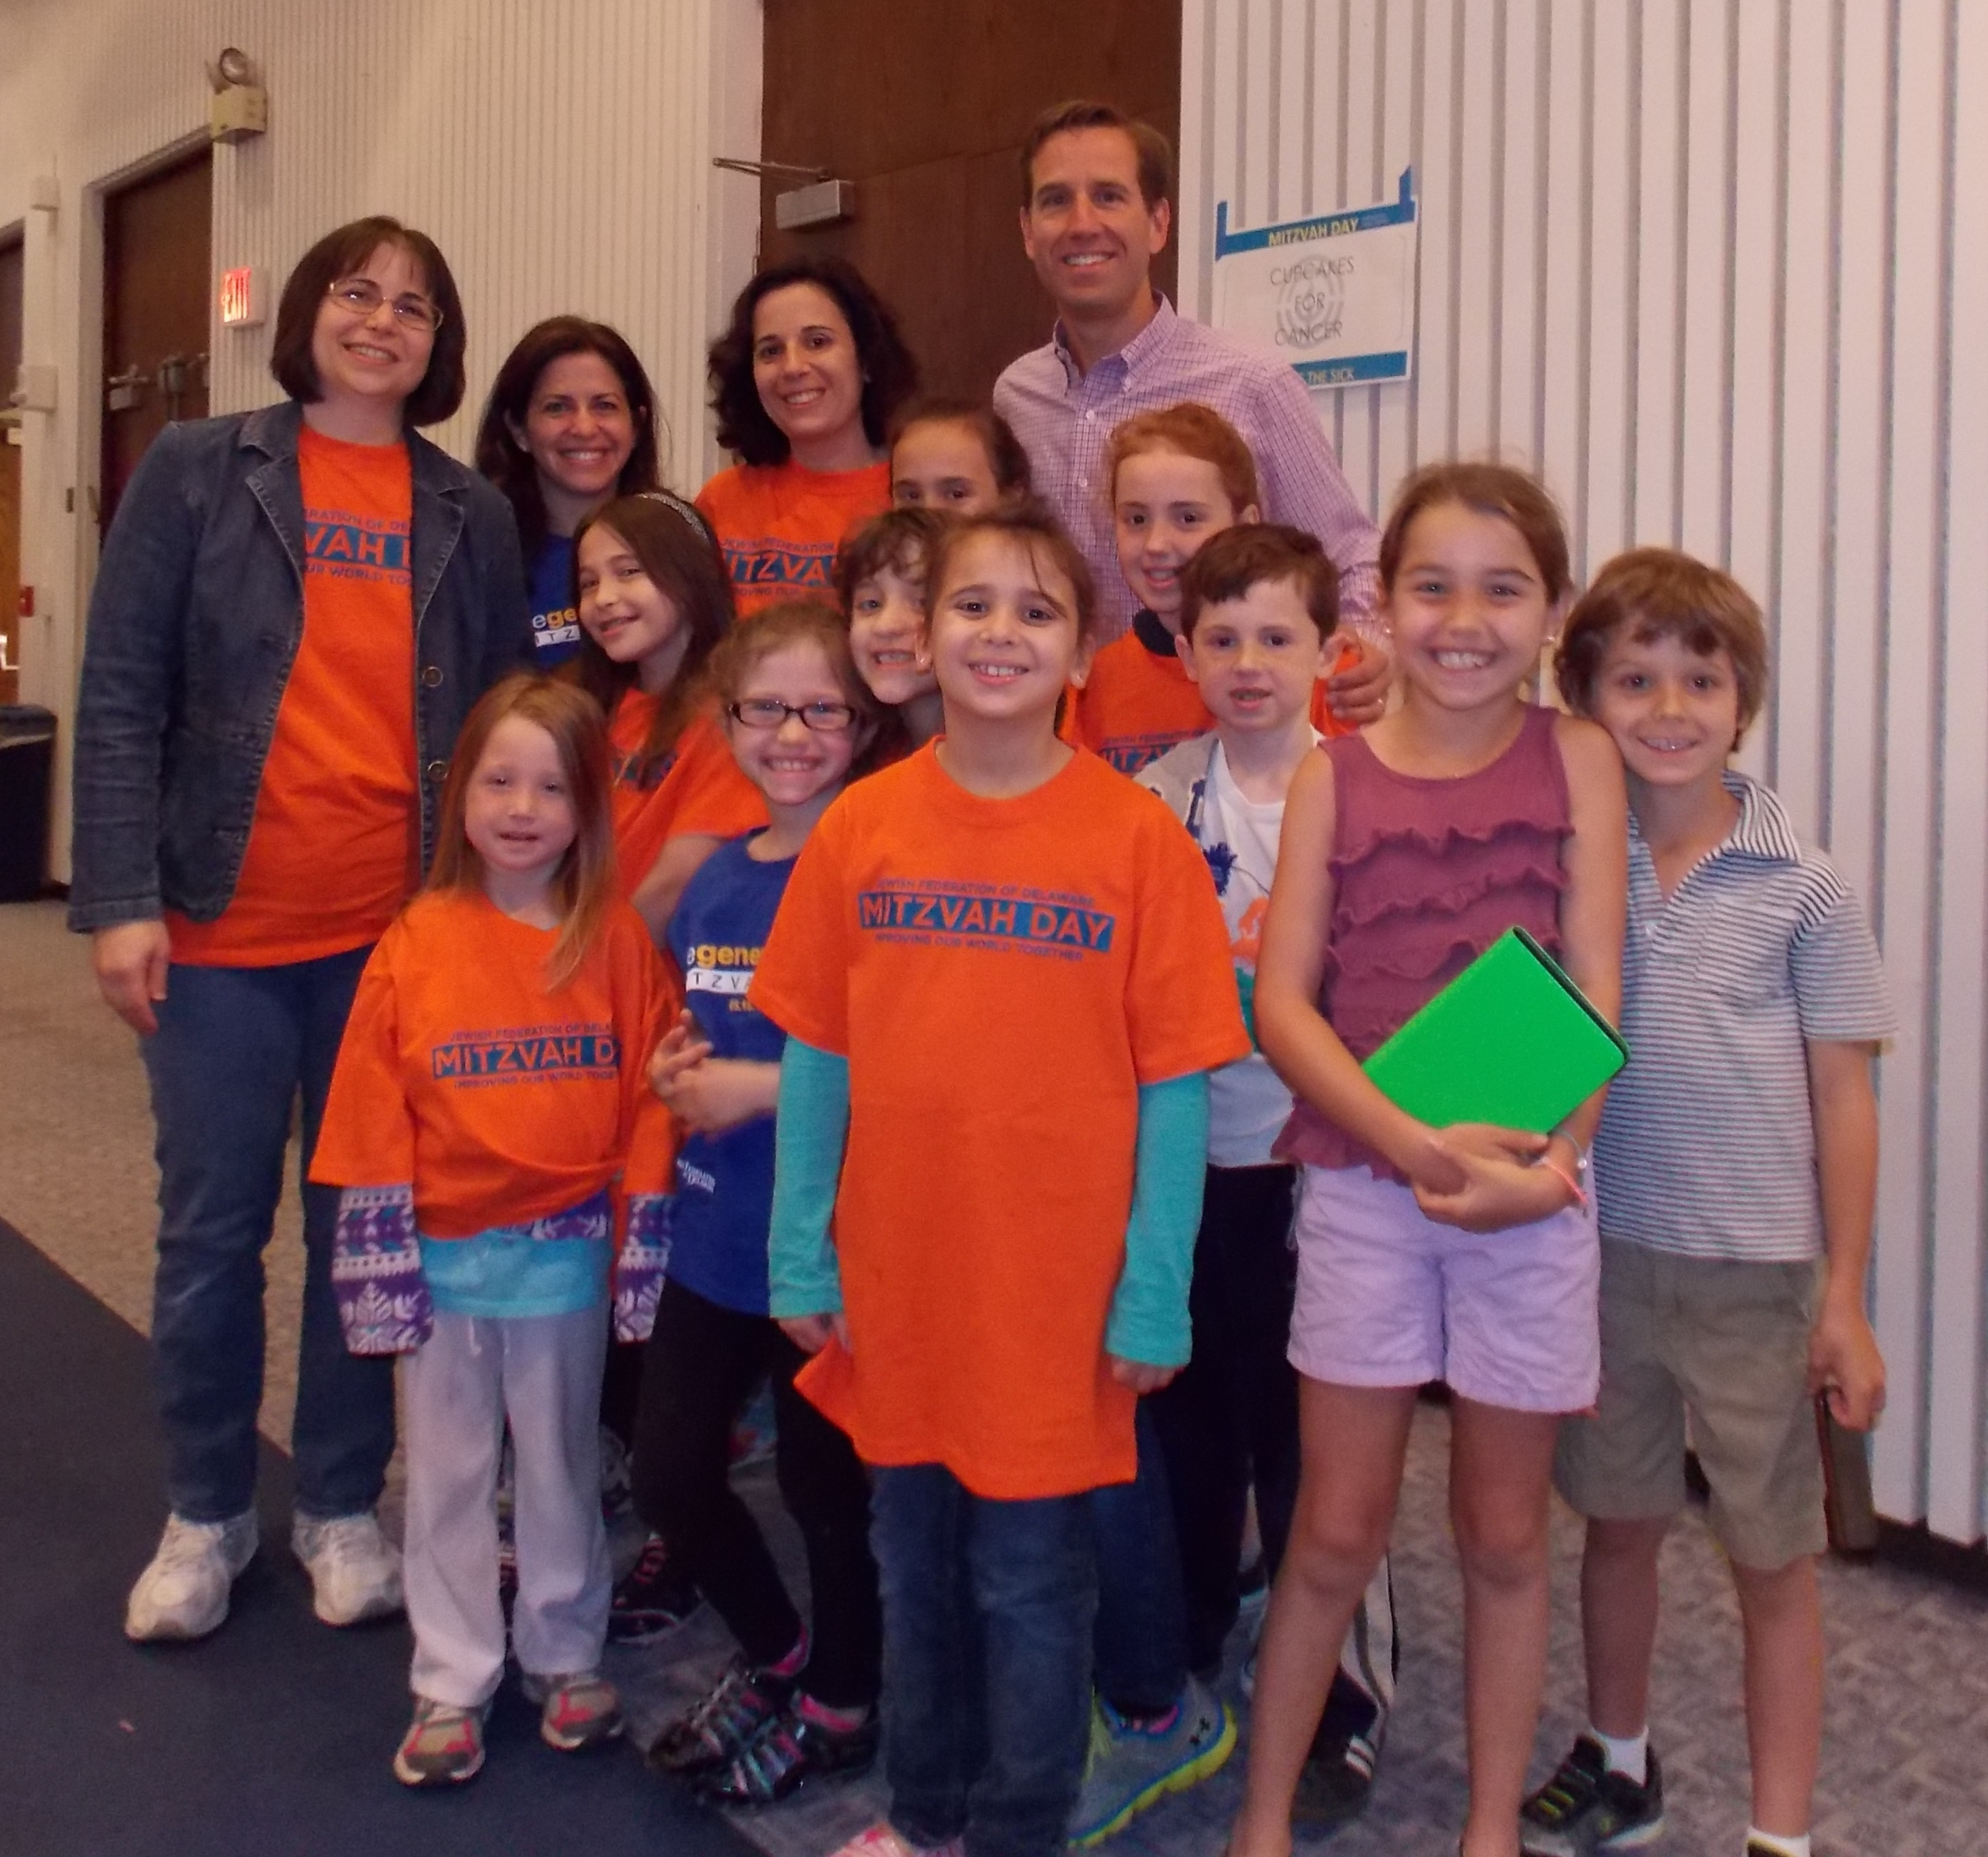 Beau Biden with Group of Kids